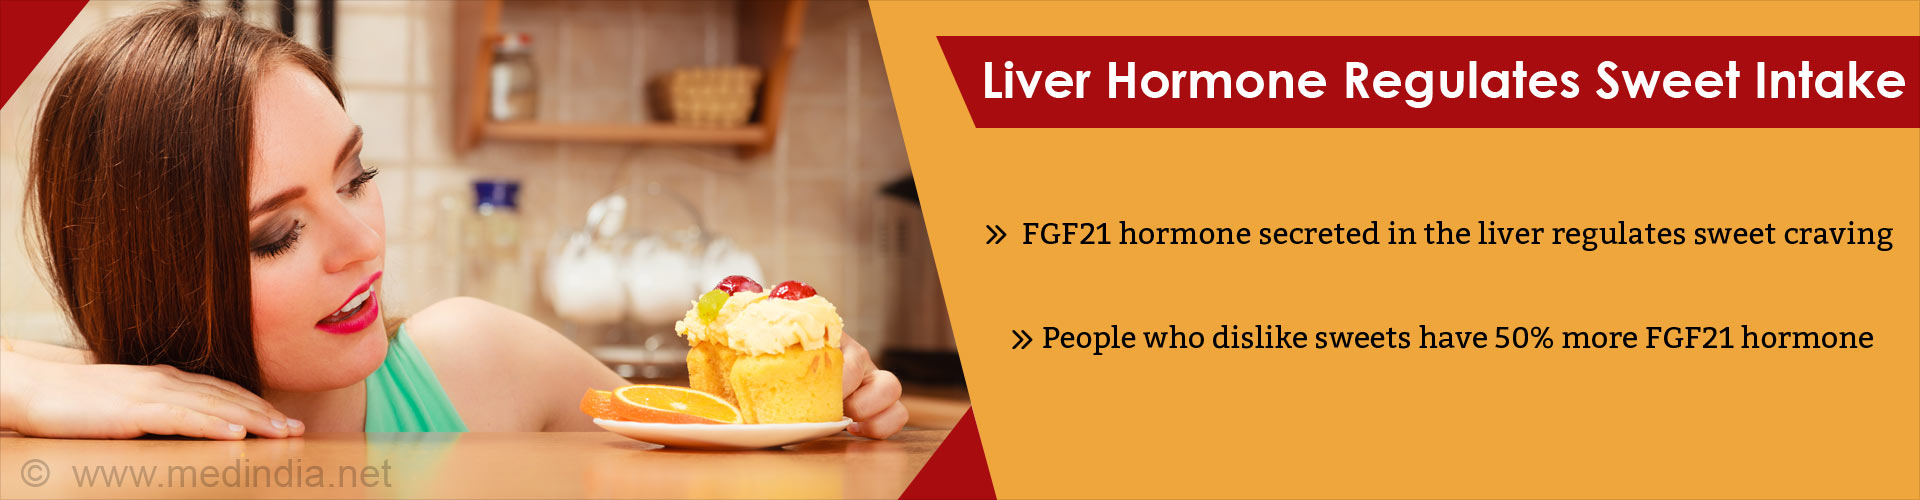 Liver hormone regulates sweet intake - FGF21 hormone secreted in the liver regulates sweet craving - People who dislike sweets have 50% more FGF21 hormone